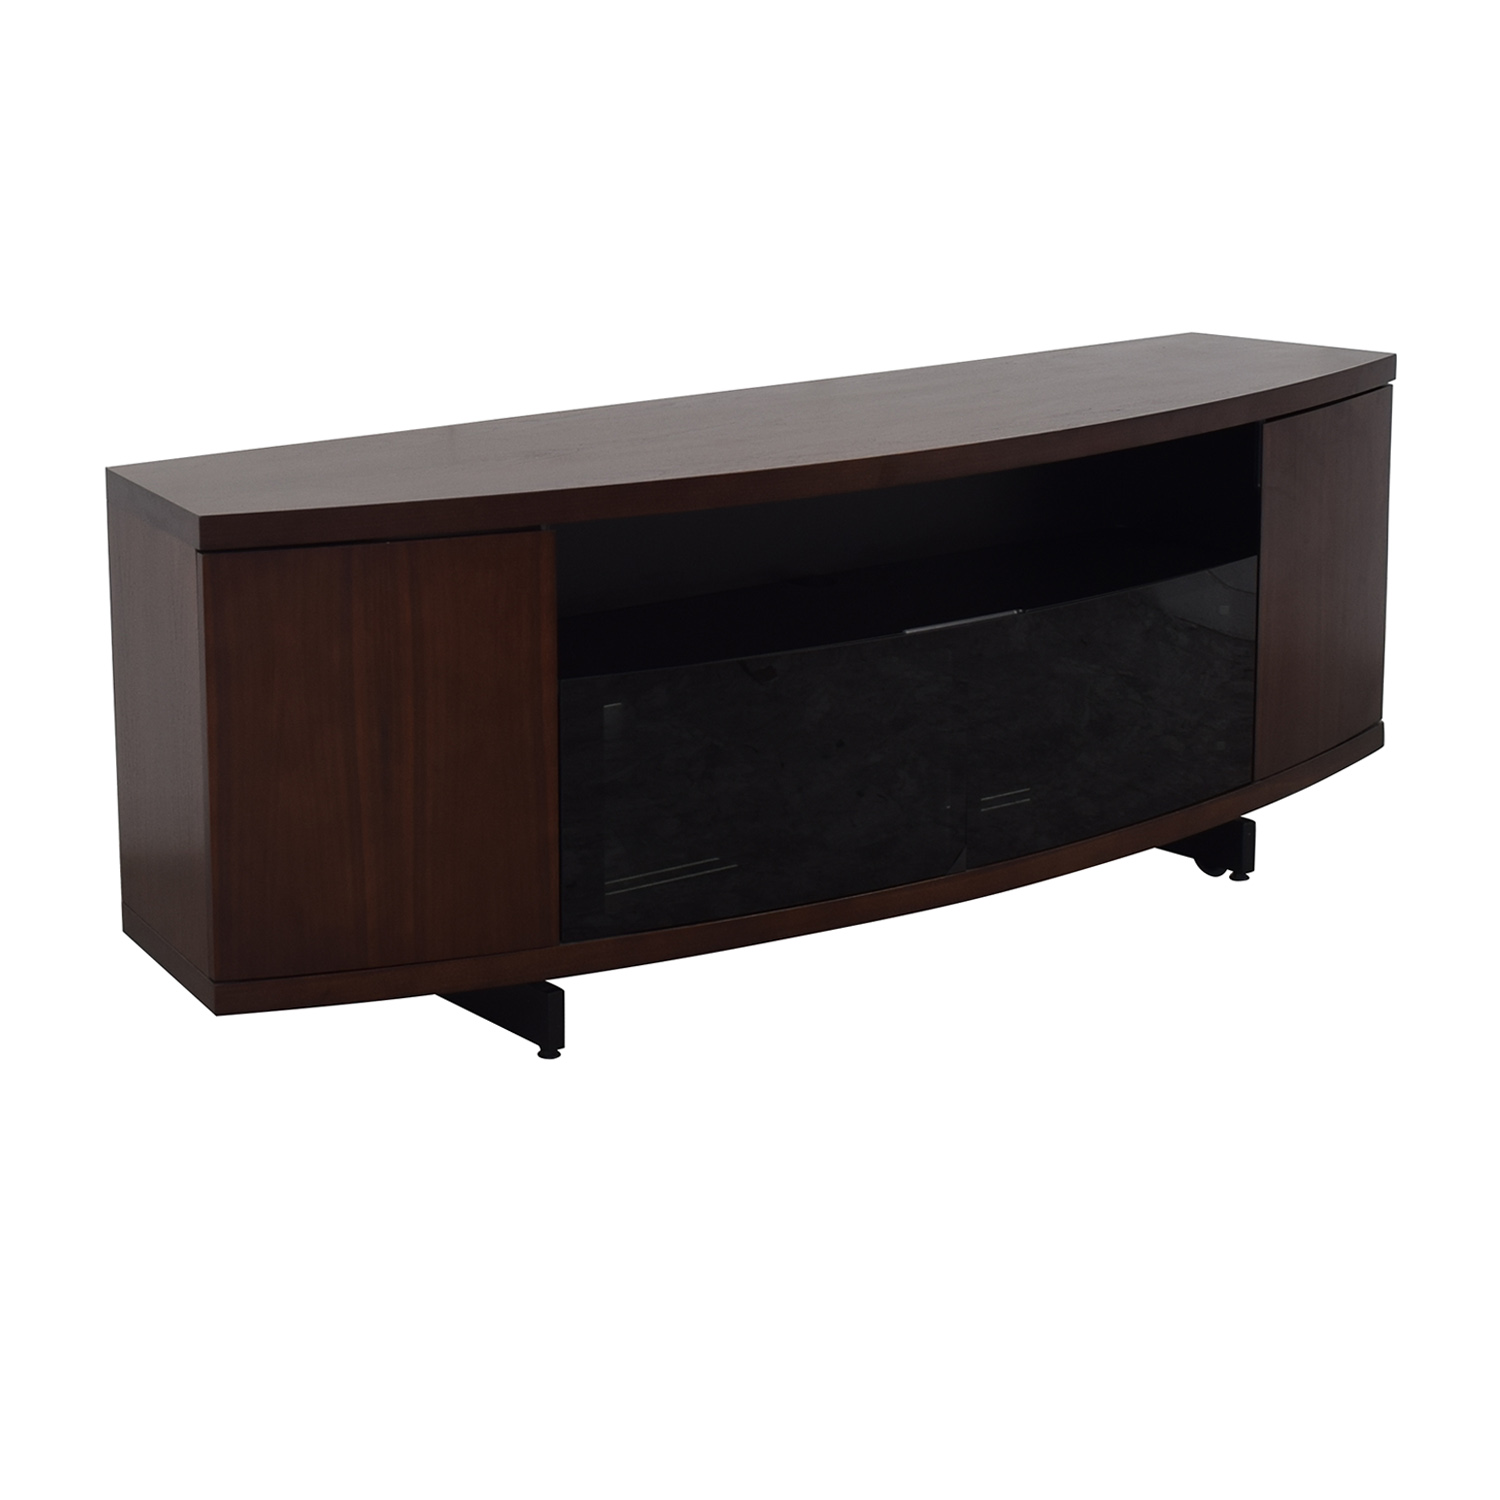 BDI Furniture Media Unit sale